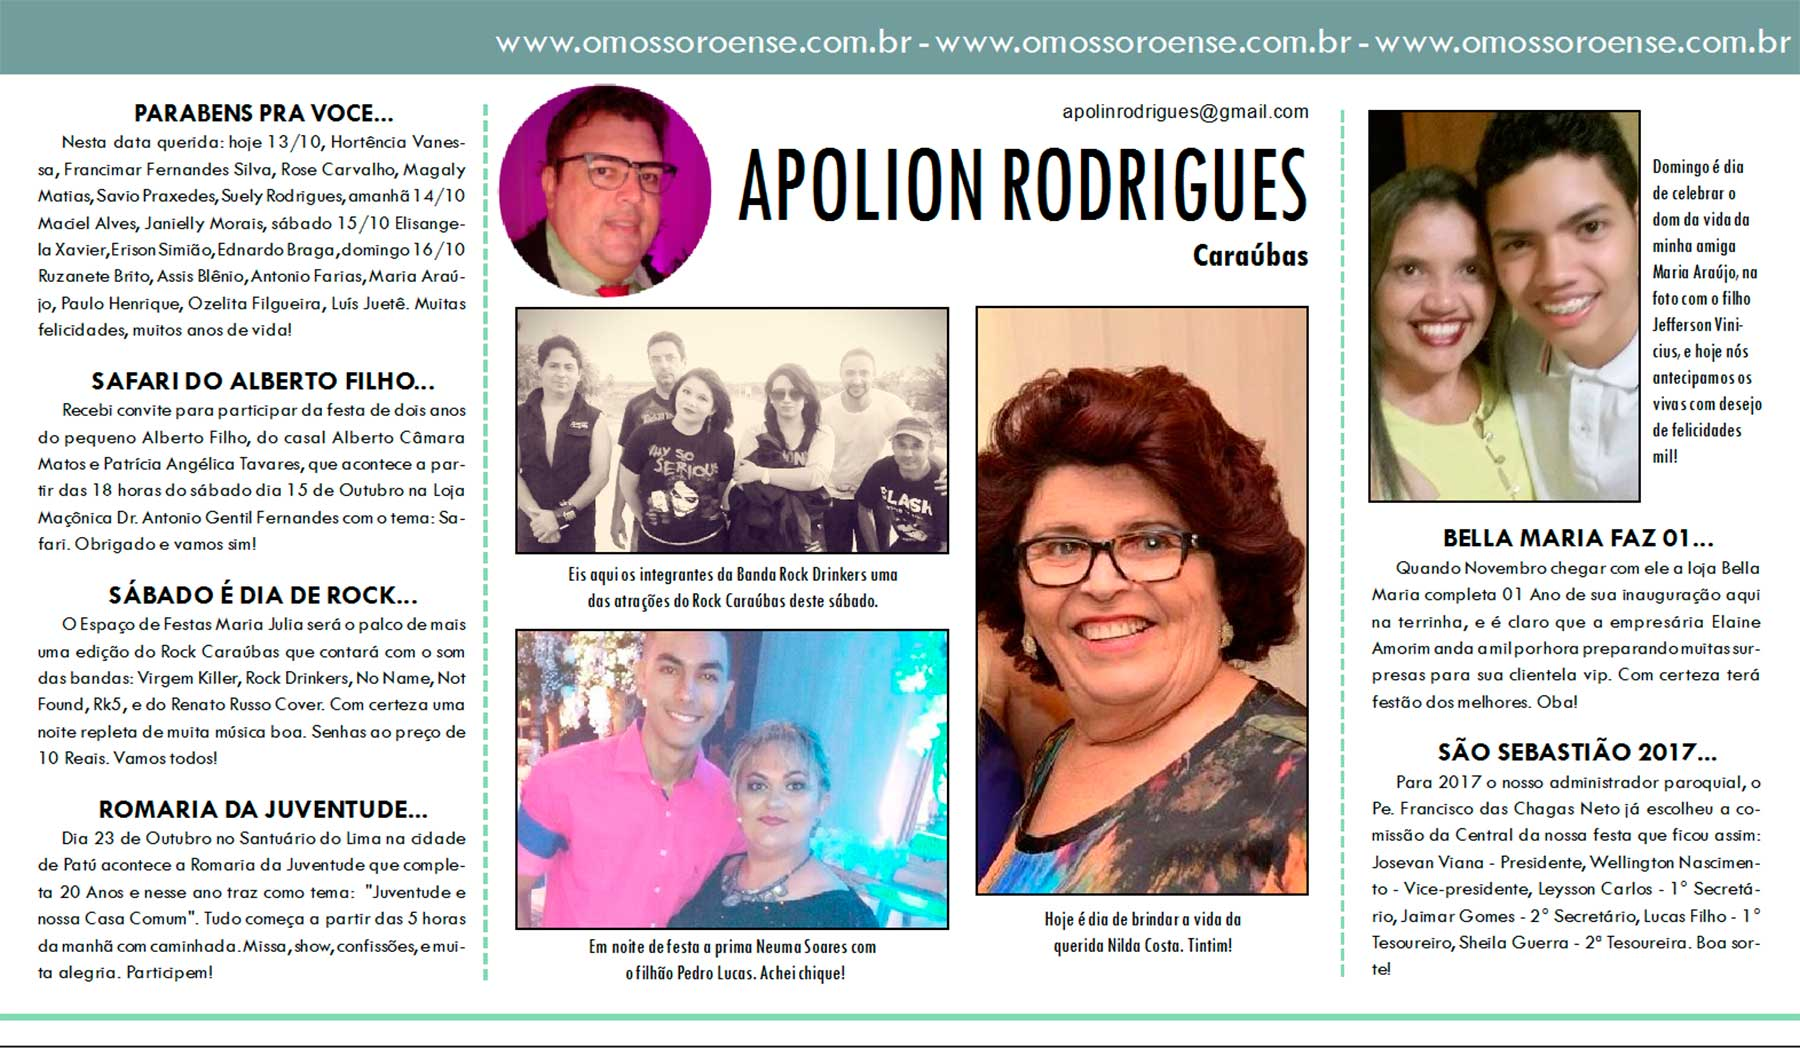 apolion-rodrigues-14-10-2016